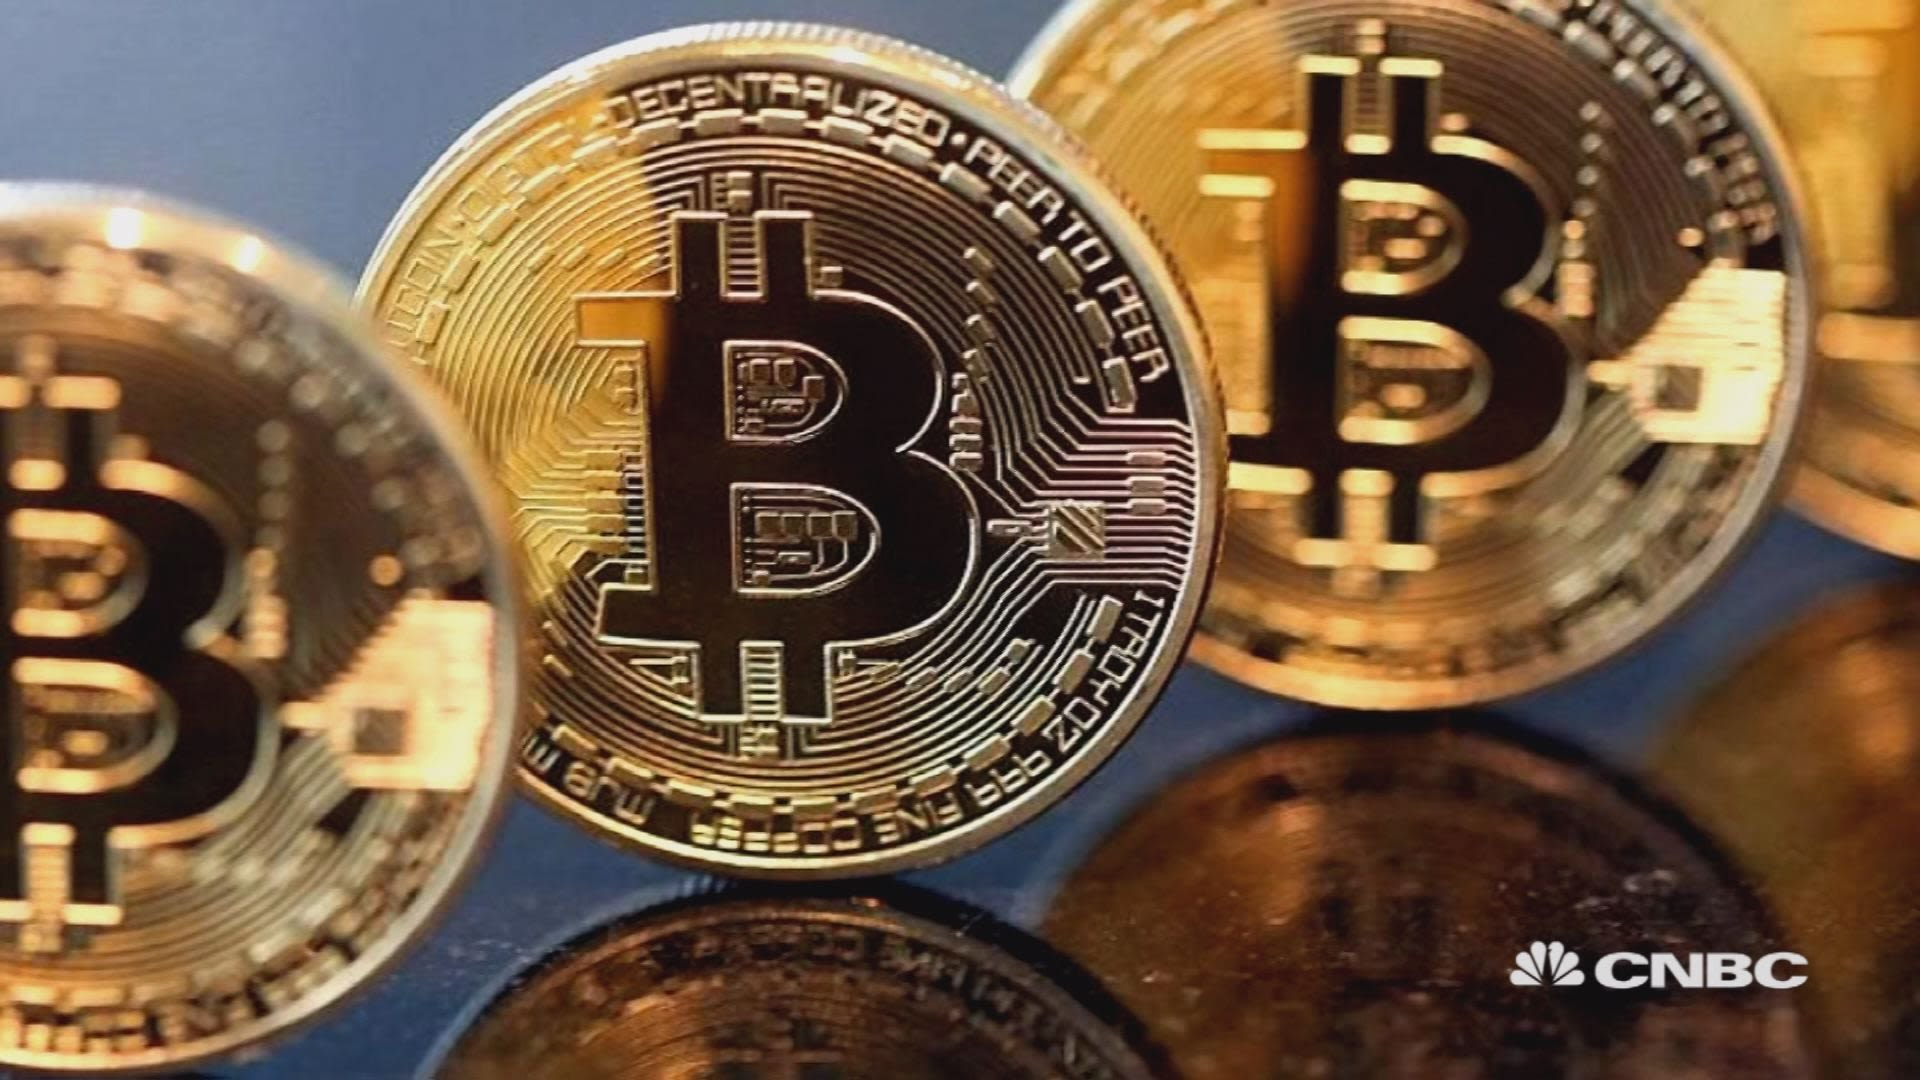 Firm launches Bitcoin exchanges in Nigeria